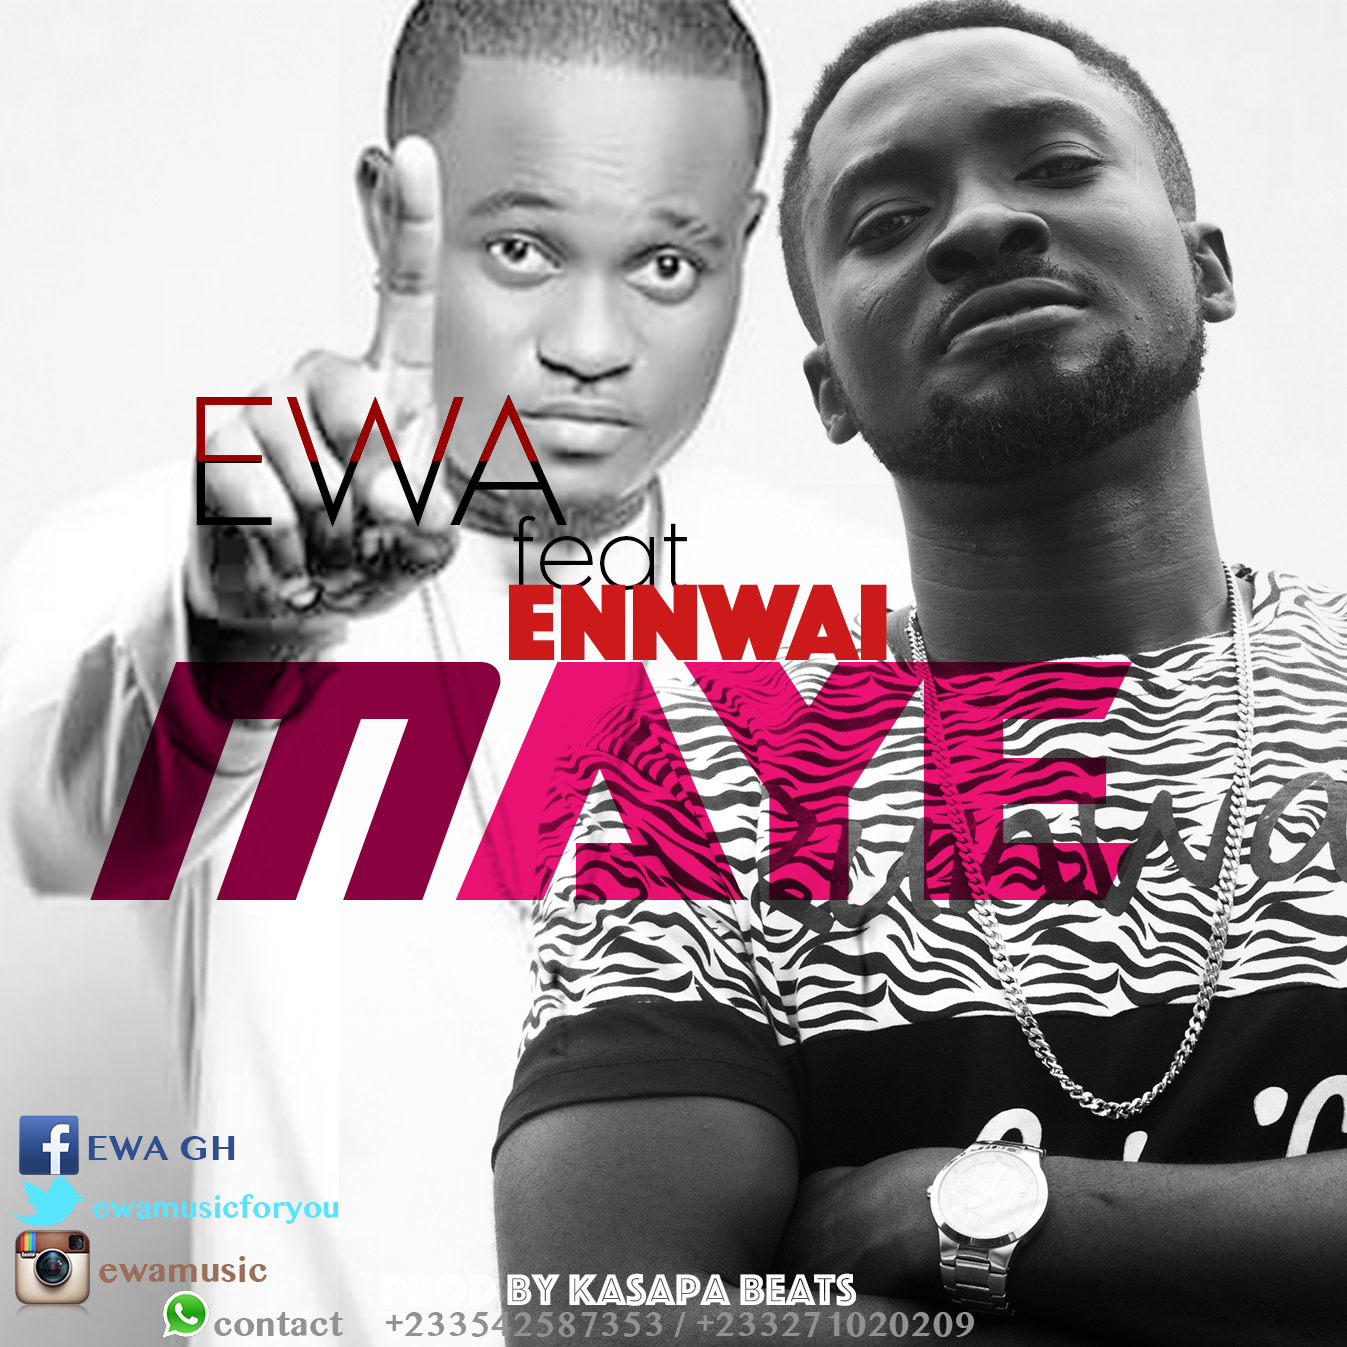 EWA ft Ennwai (Dobble) - Maye (prod by Kasapa Beatz)